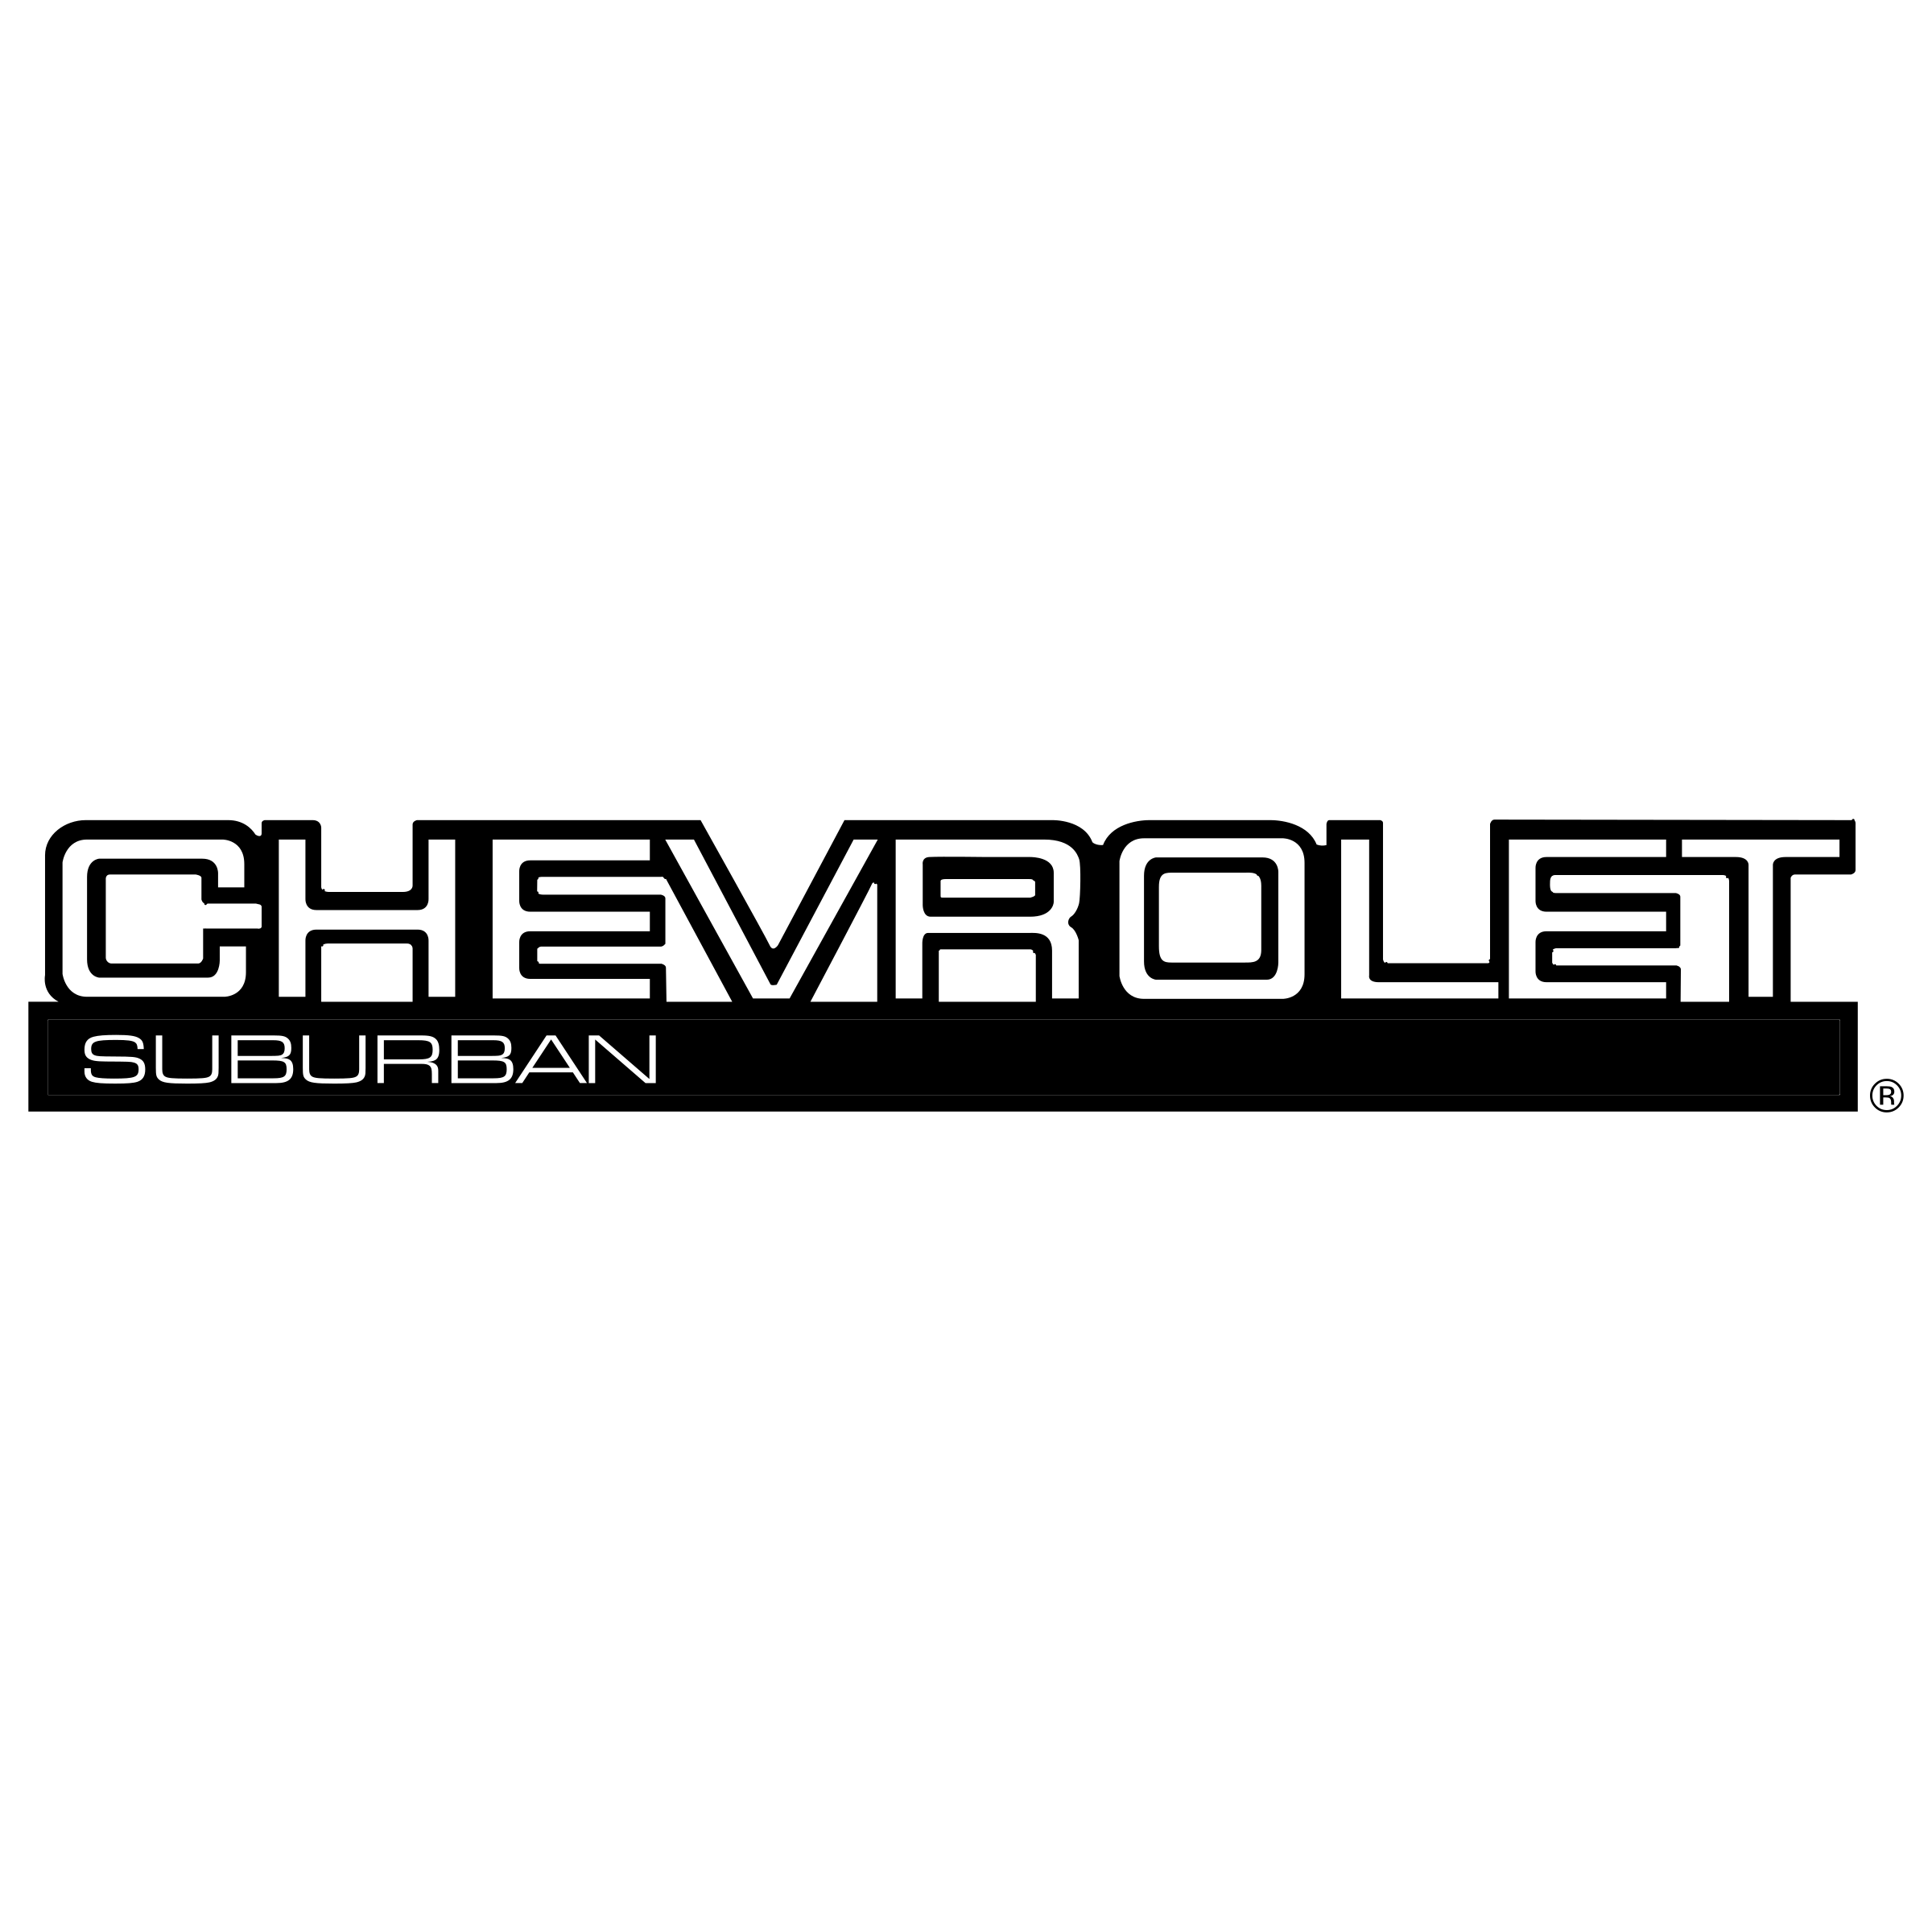 Chevrolet vector black and white. Suburban logo png transparent